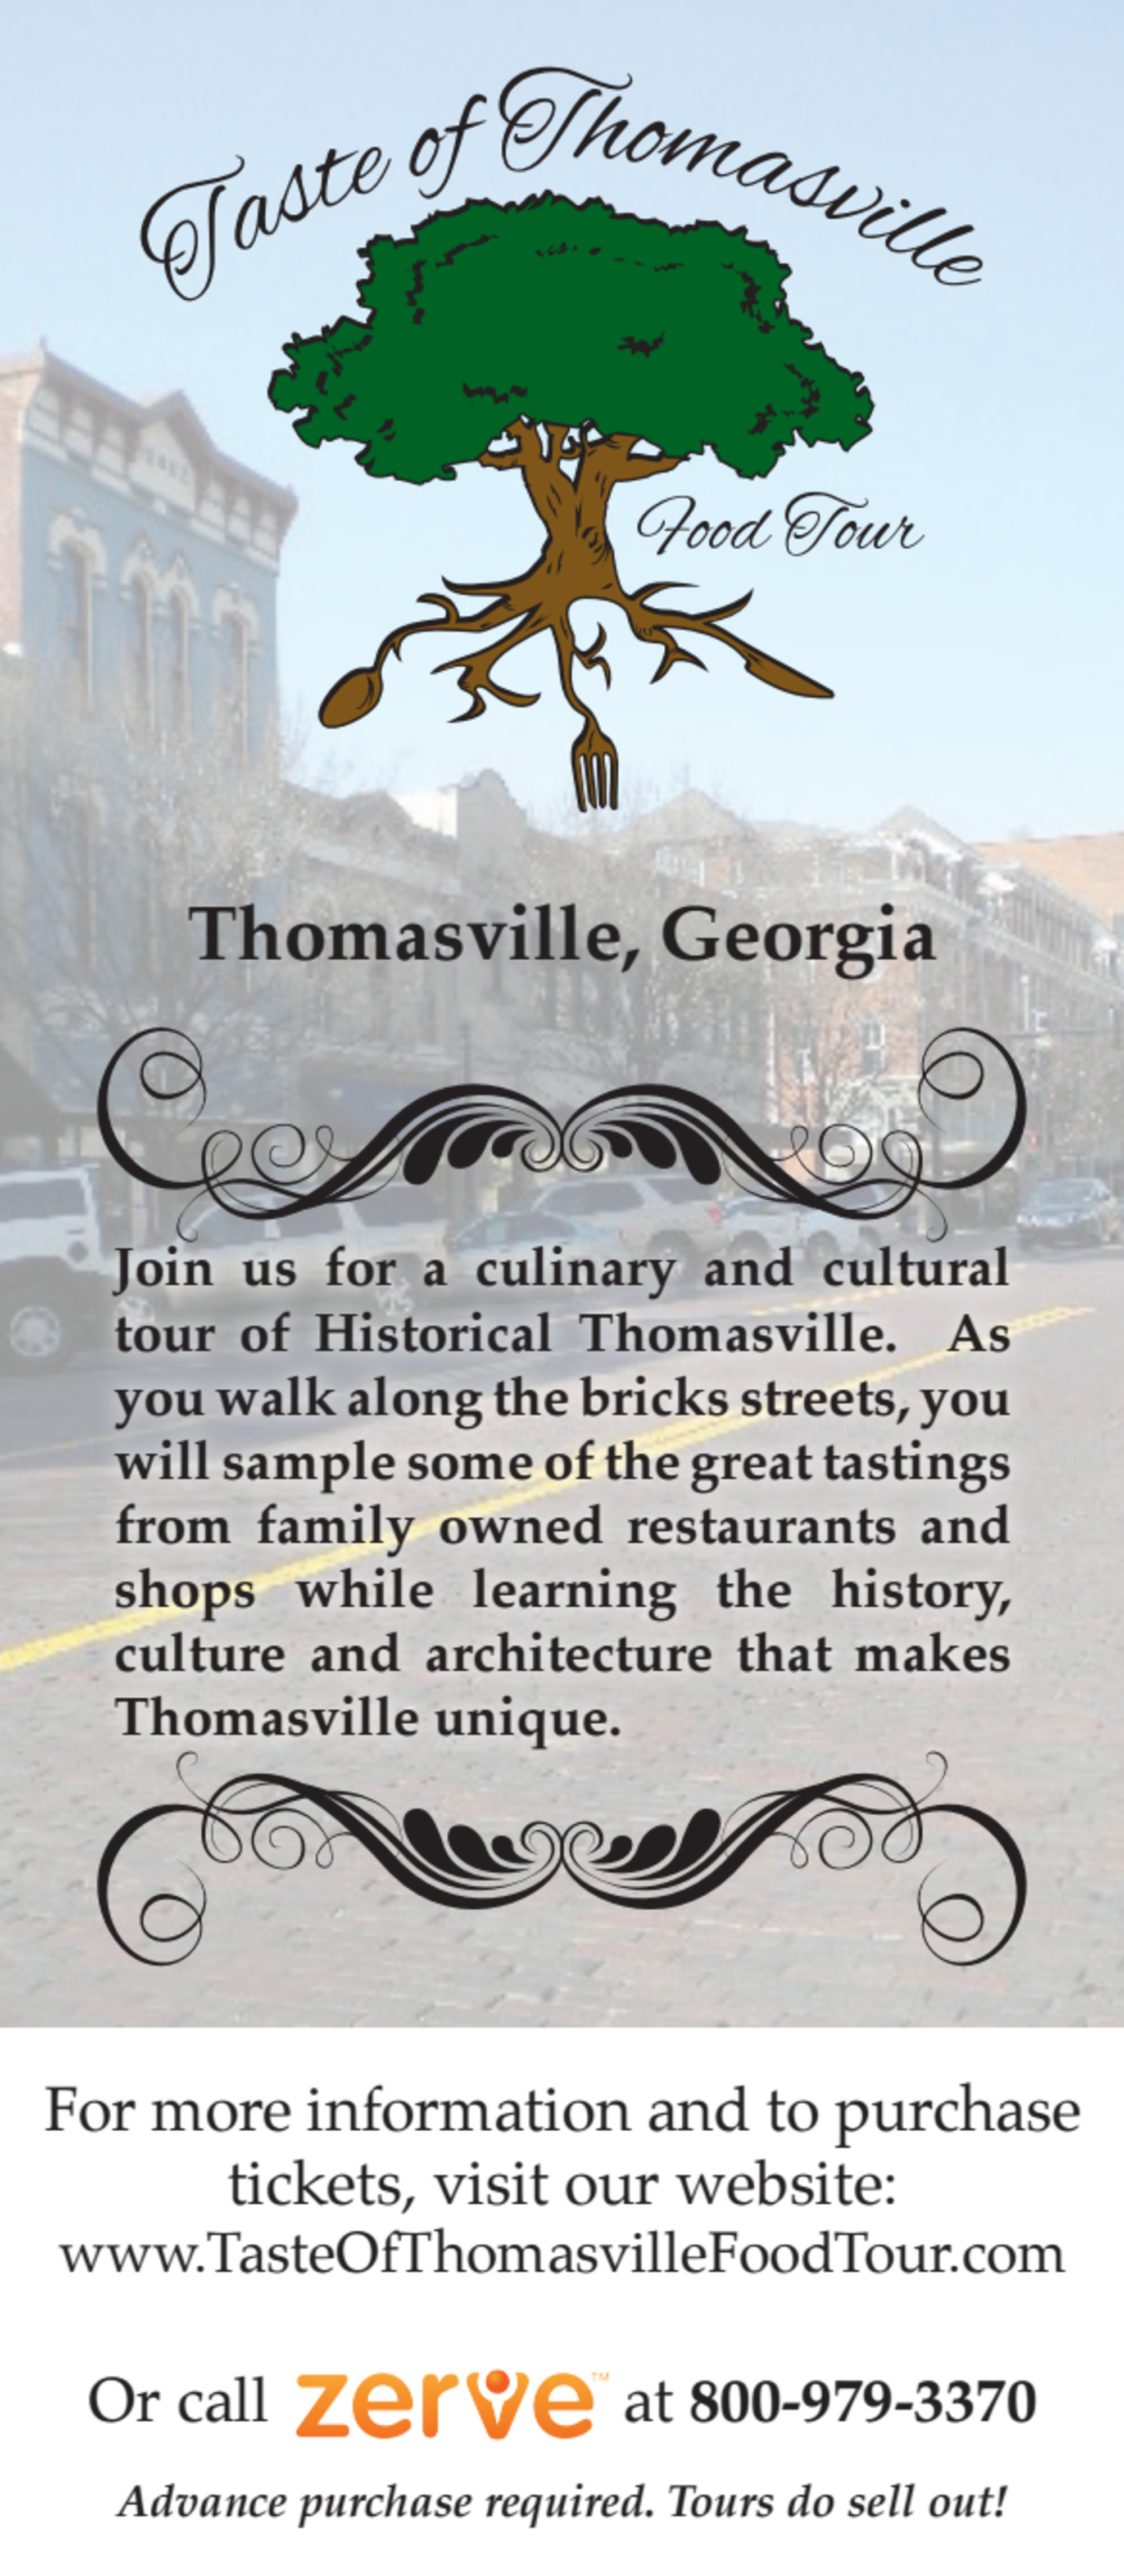 Taste of Thomasville Food Tour